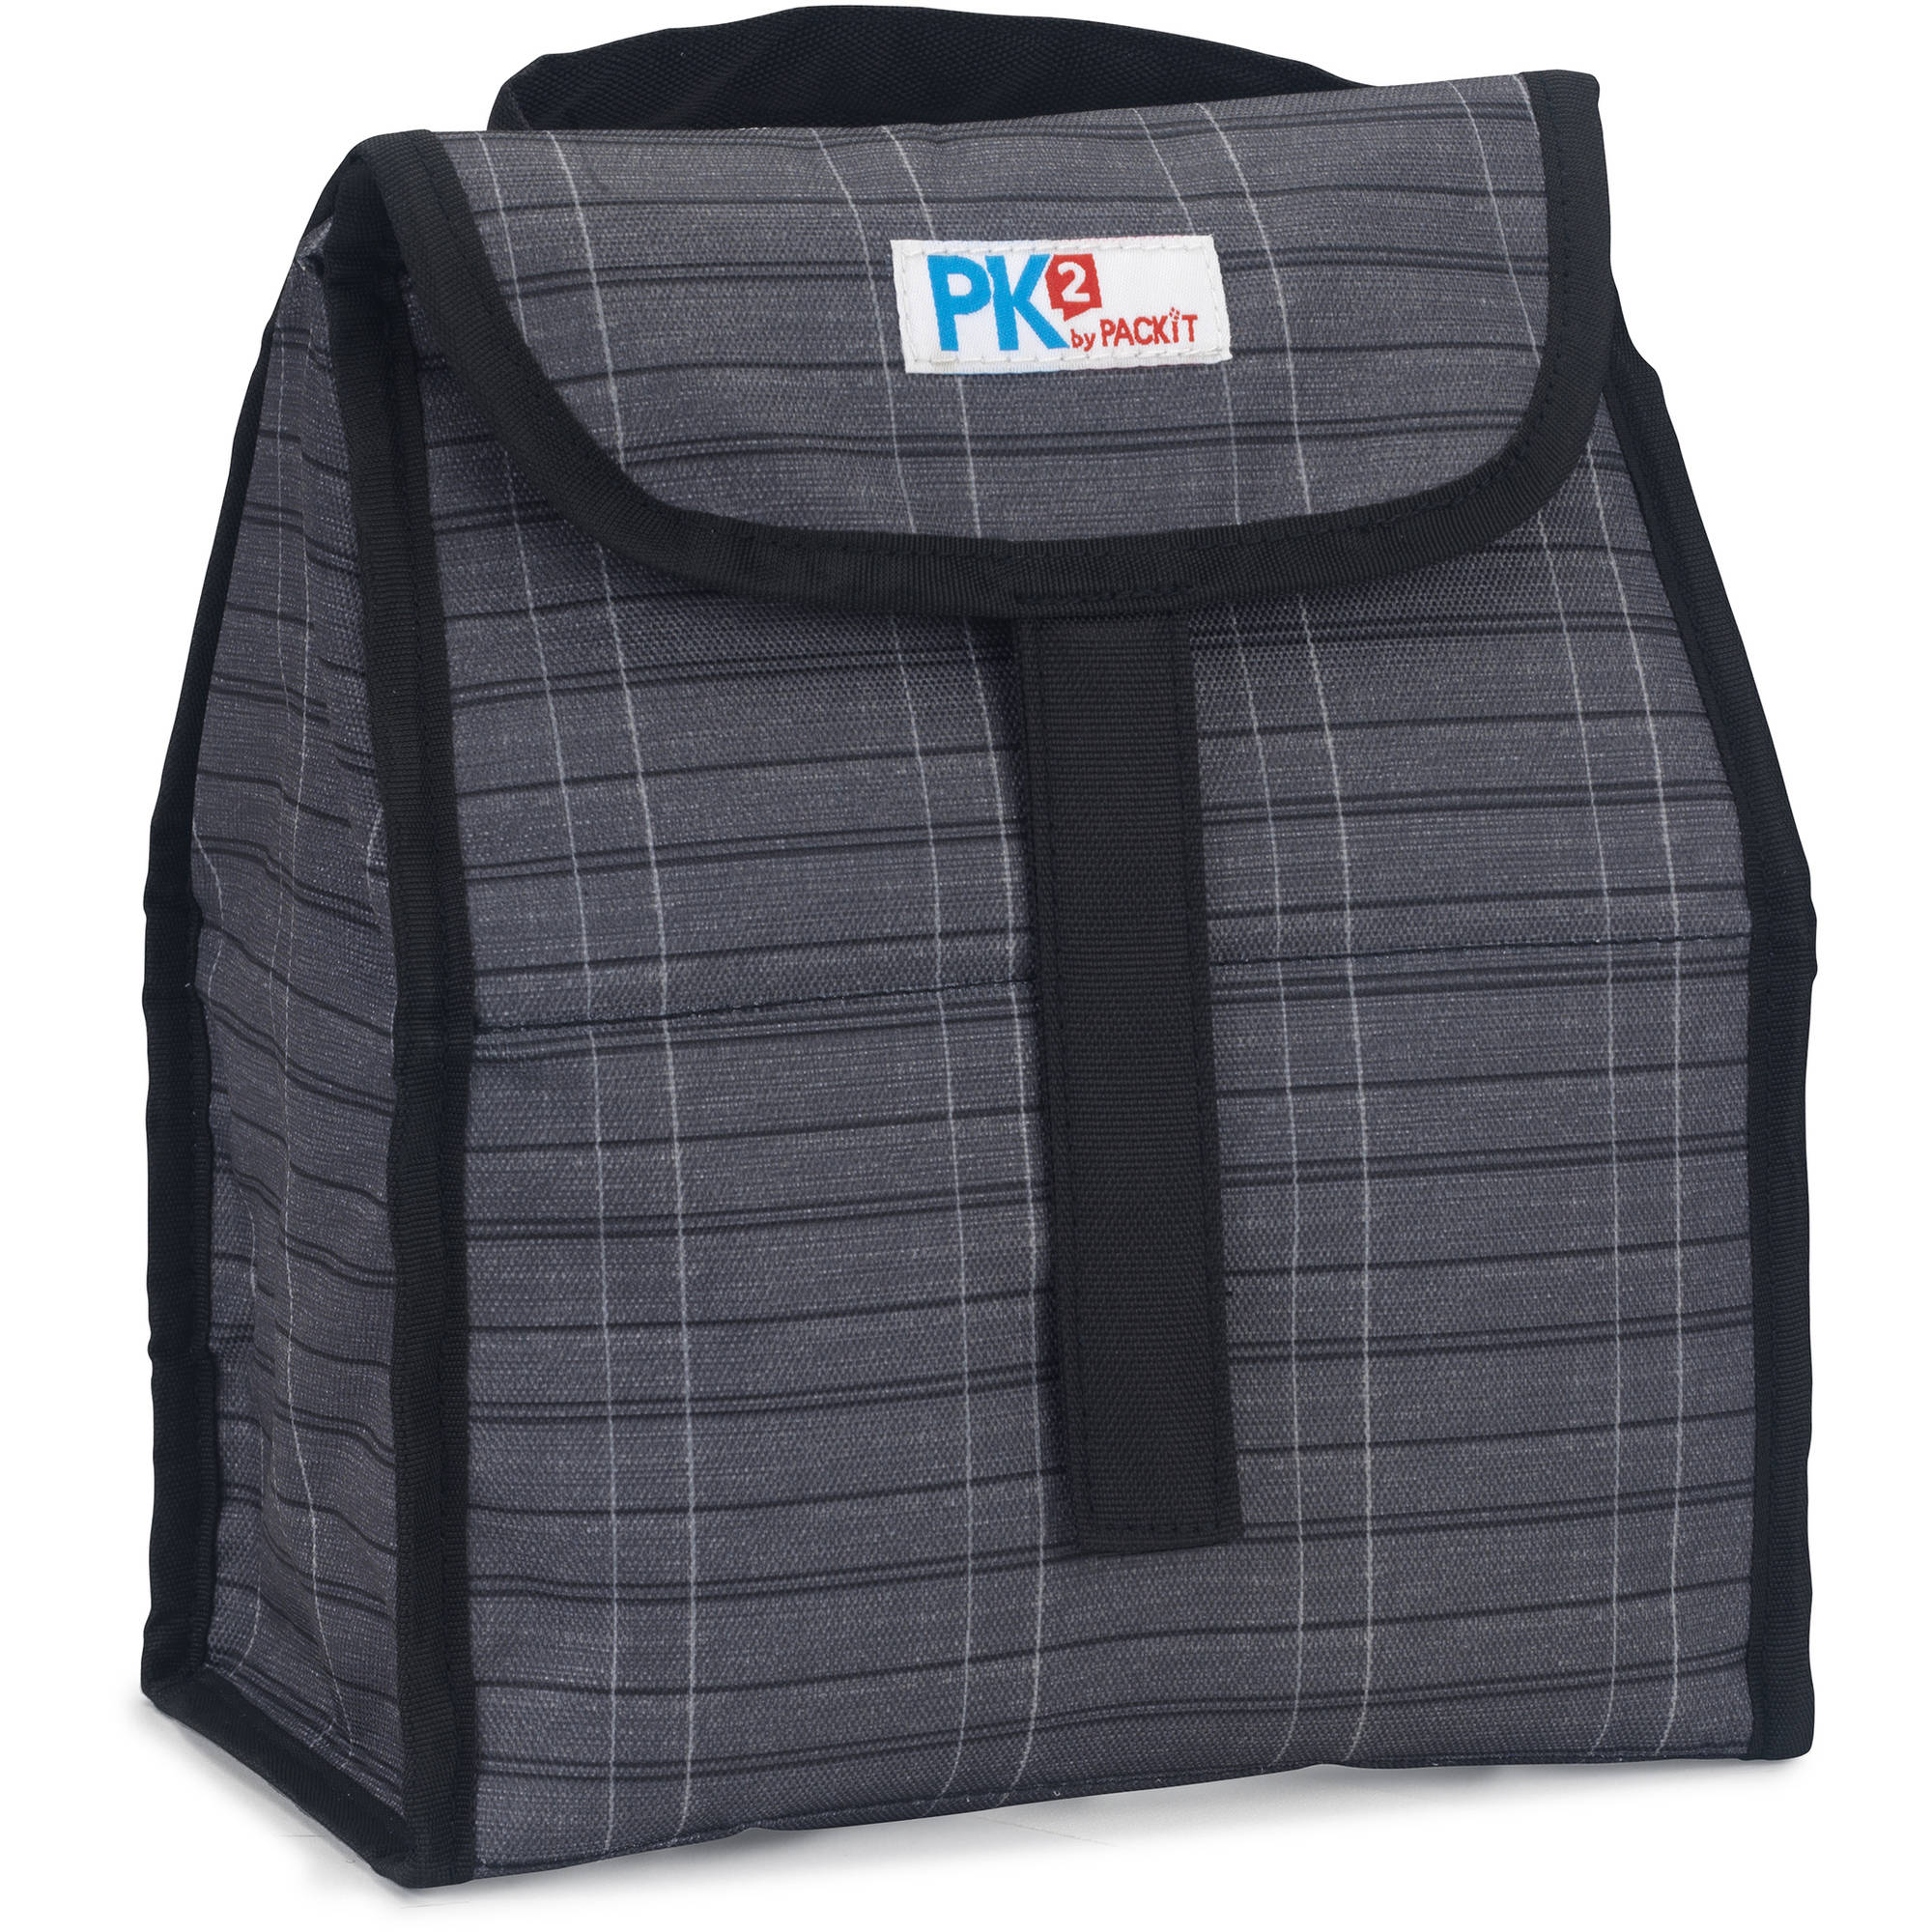 PackIt PK2 Lunch Sack, Urban Plaid